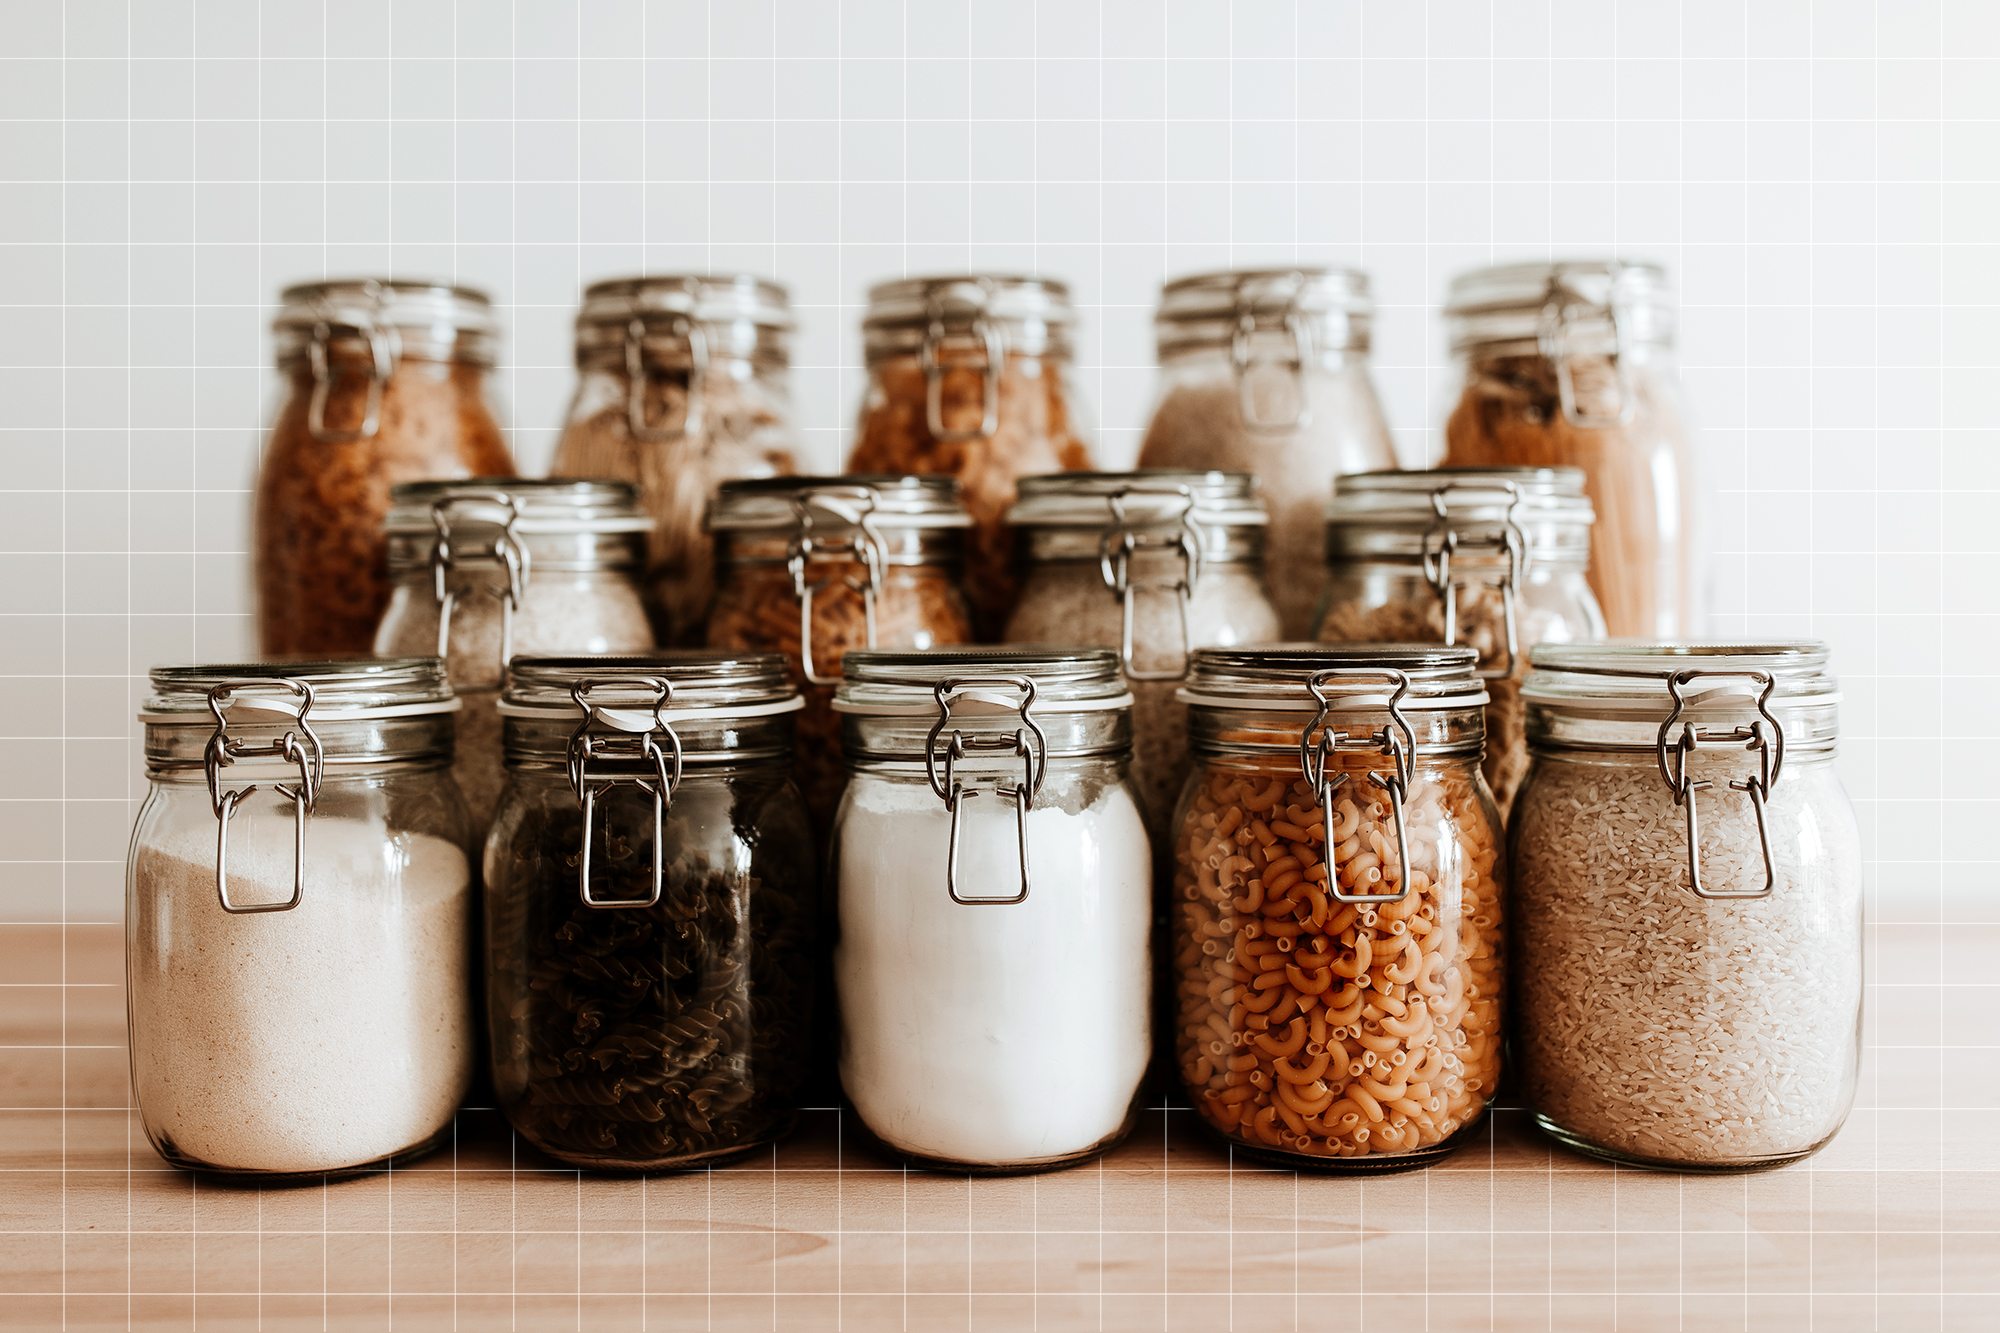 Glass jars full with dried uncooked food ingredients.